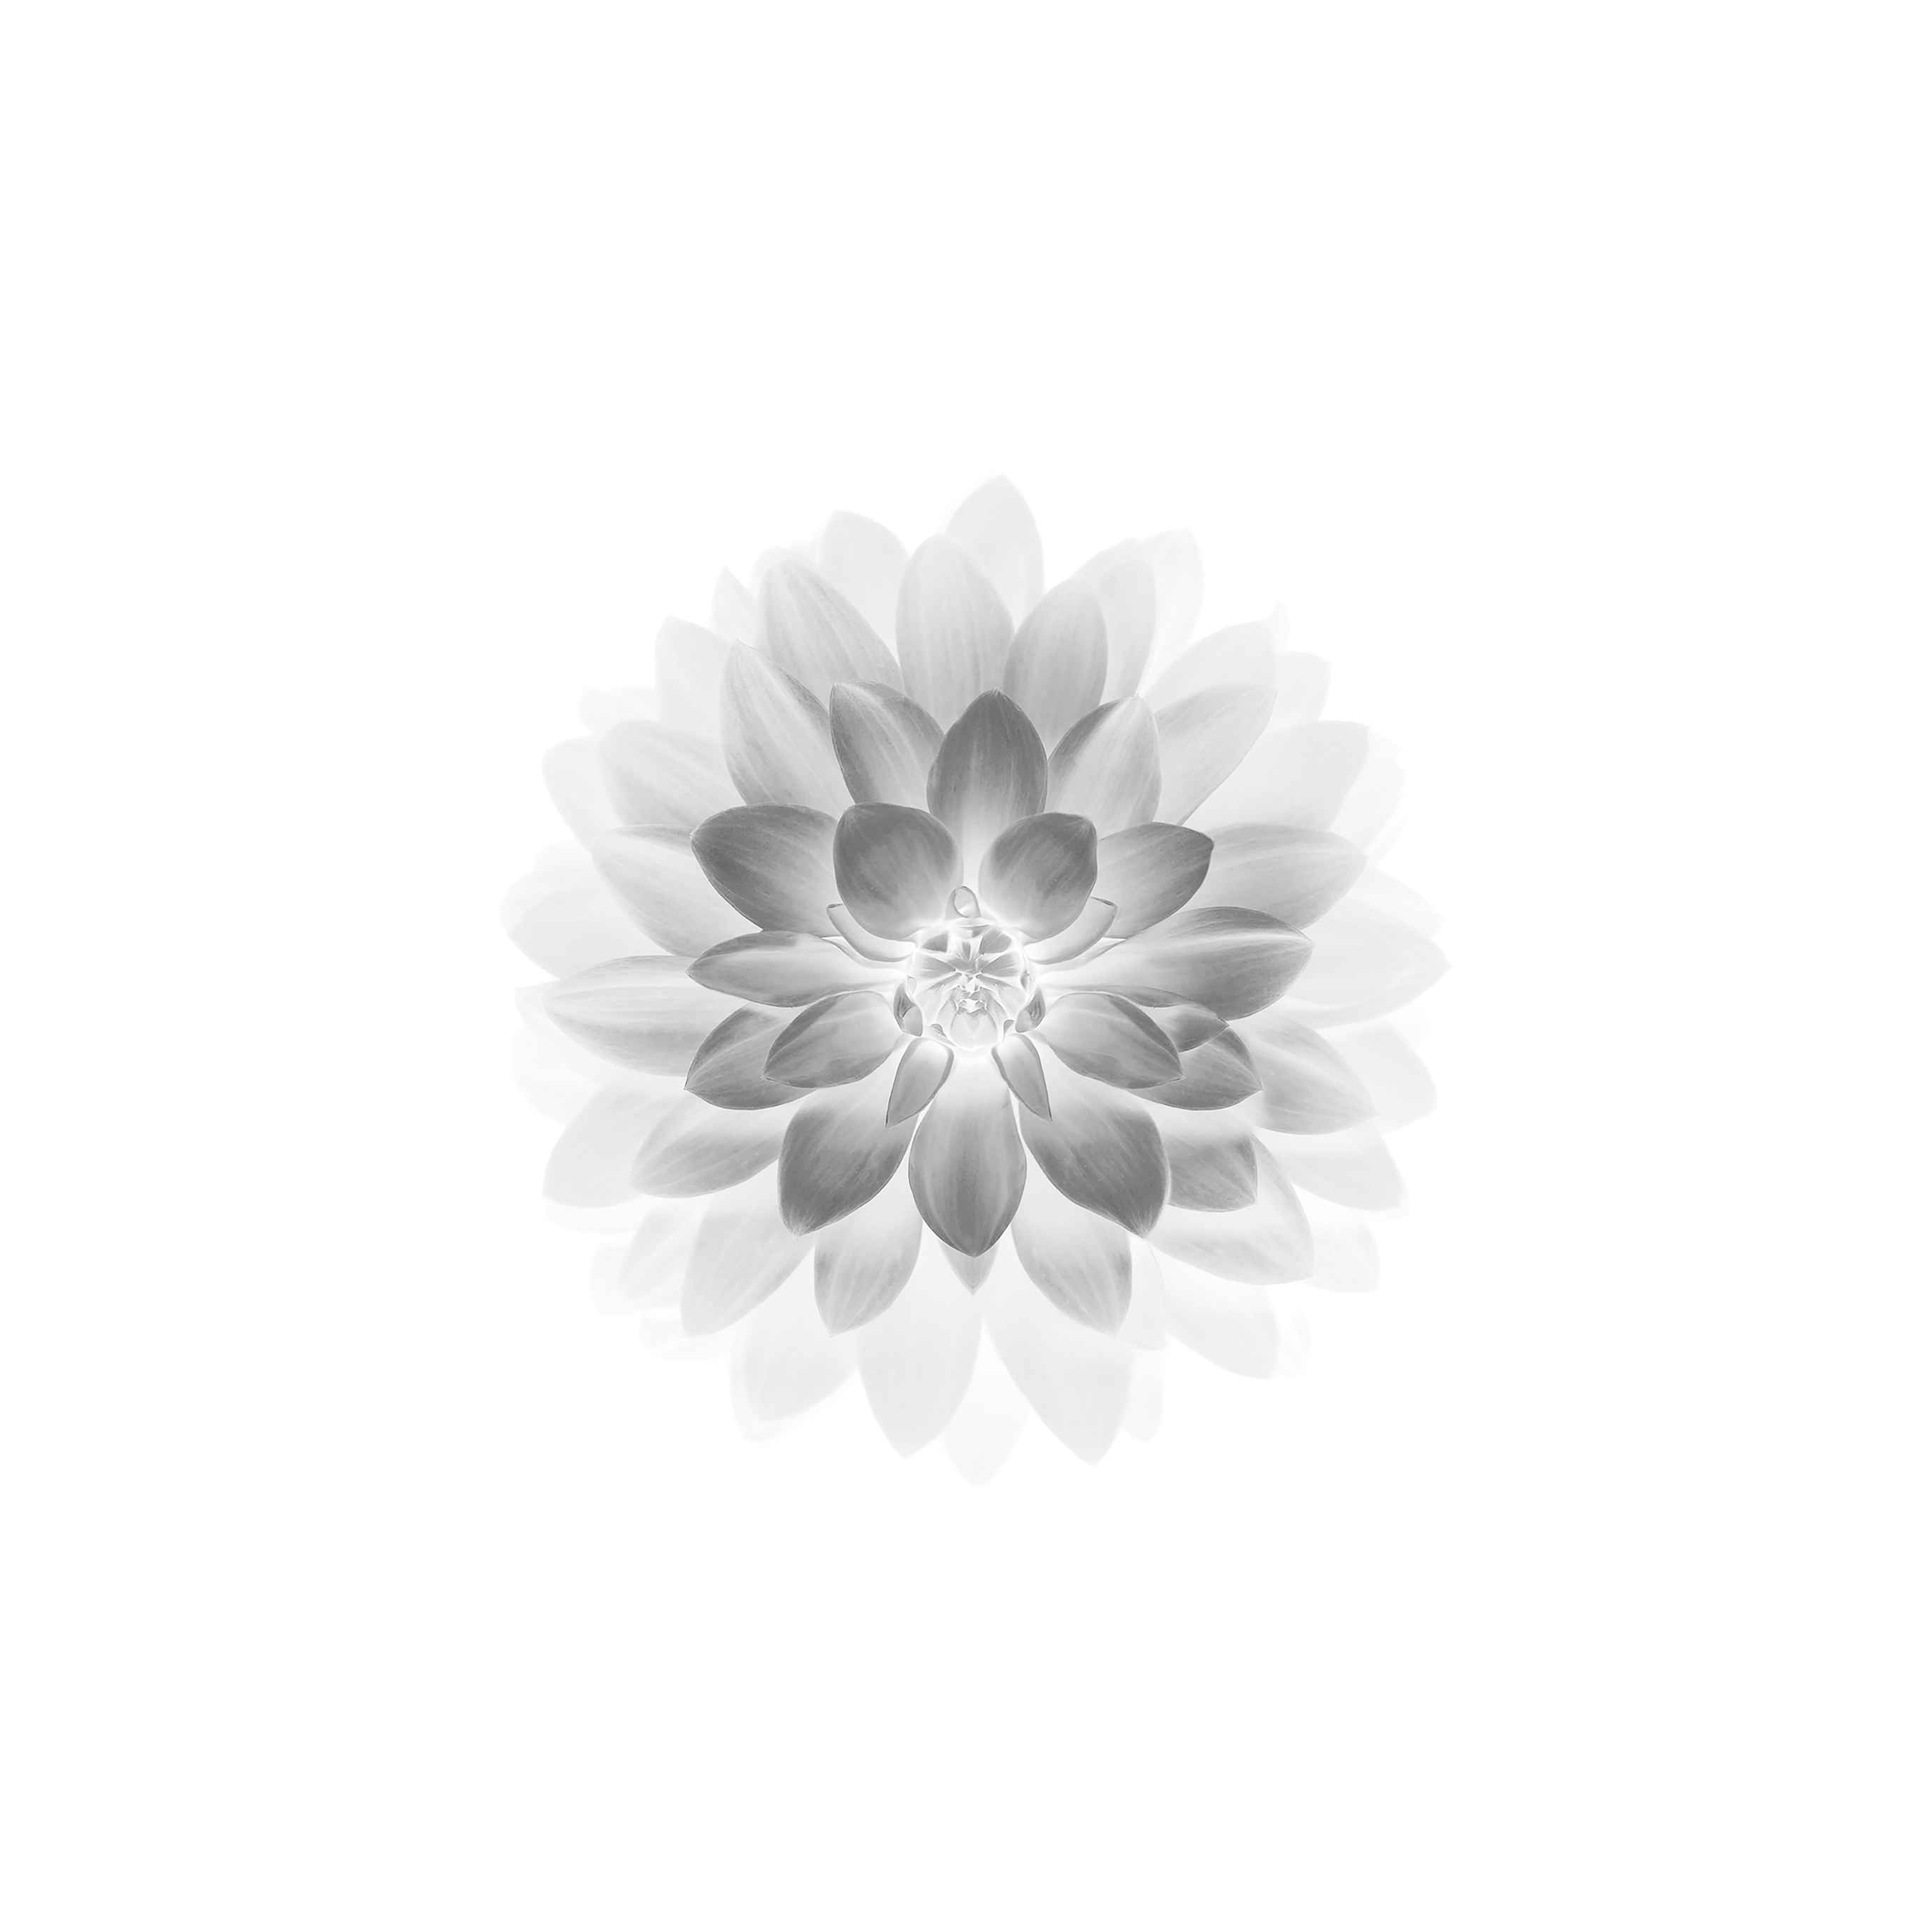 Apple Logo Iphone 5 Wallpaper Ad78 Apple White Lotus Iphone6 Plus Ios8 Flower Papers Co